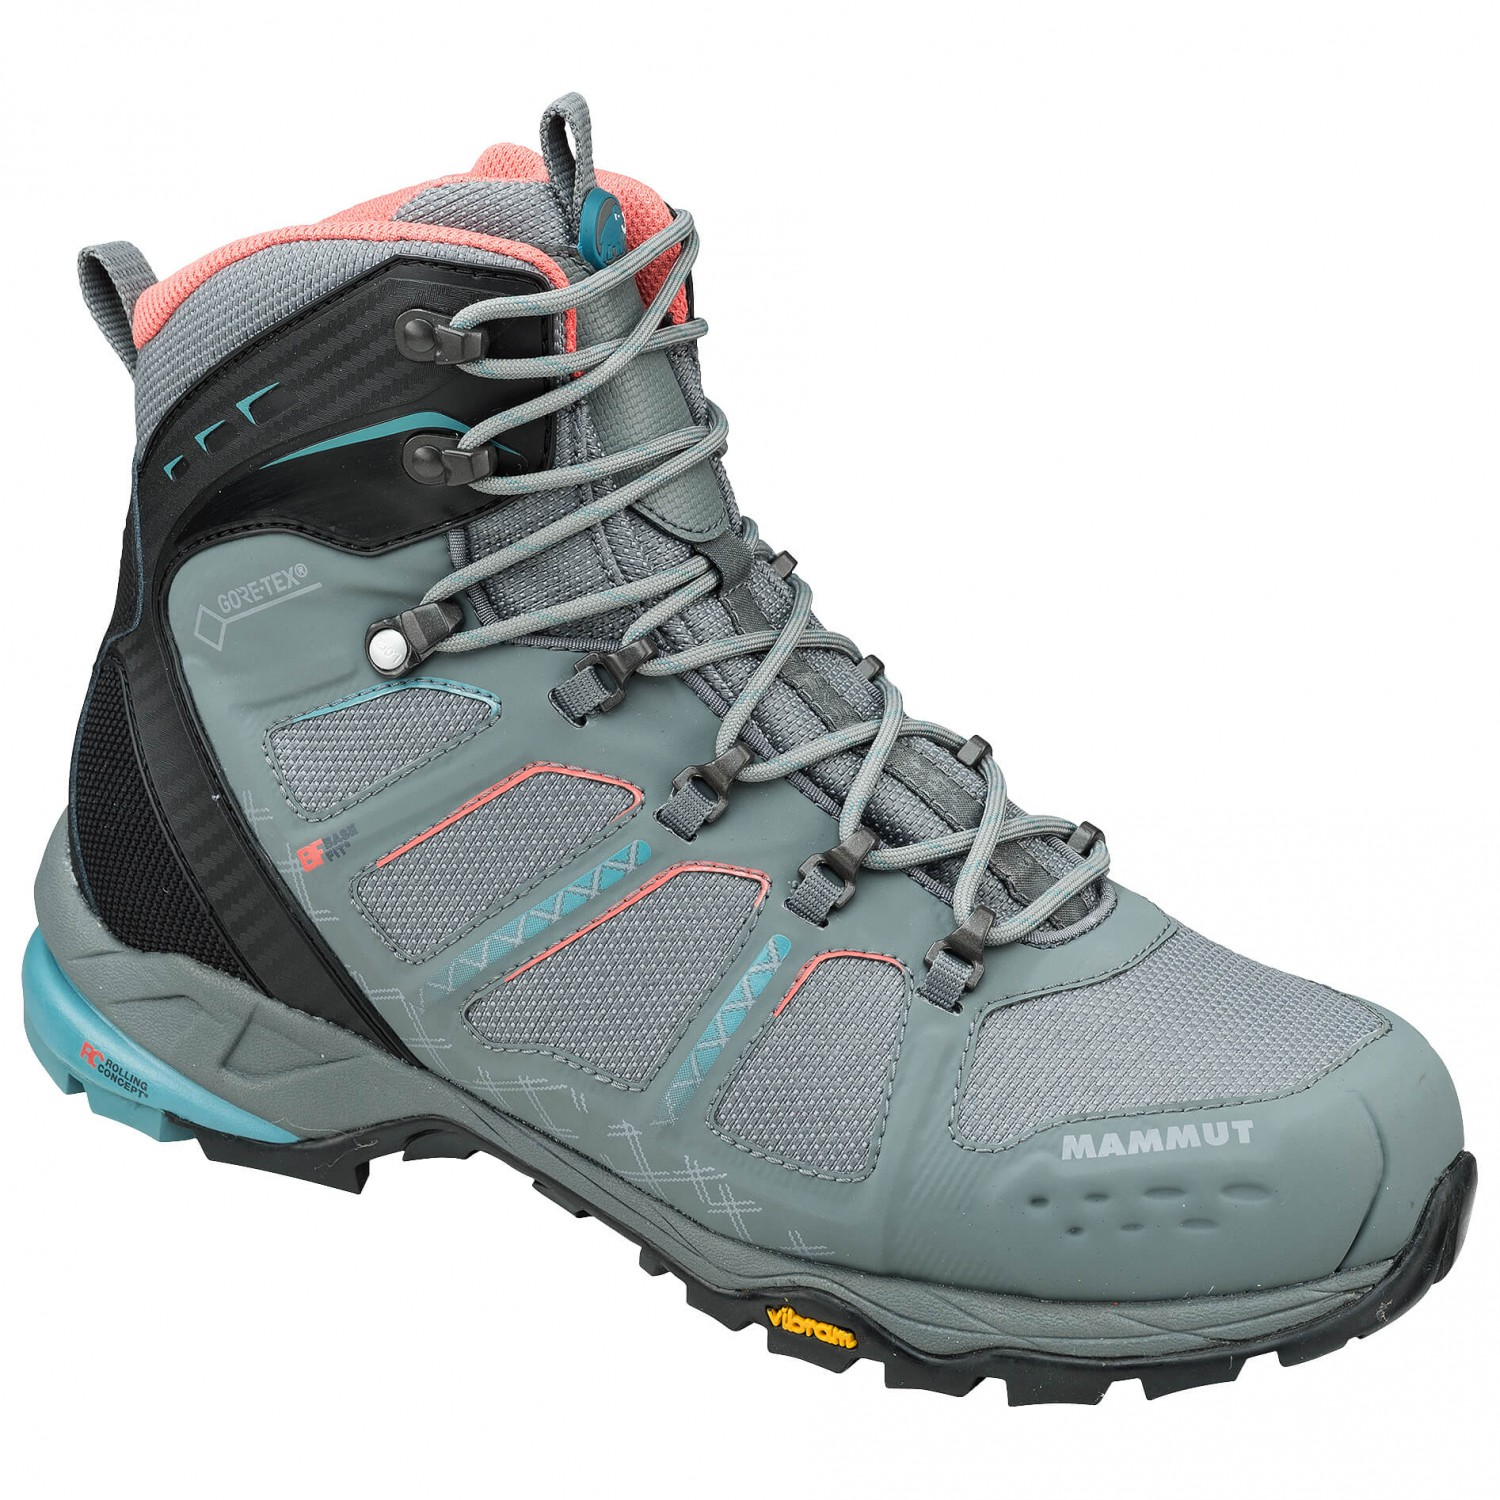 628b553e14b4 Mammut T Aenergy High GTX - Walking Boots Women s